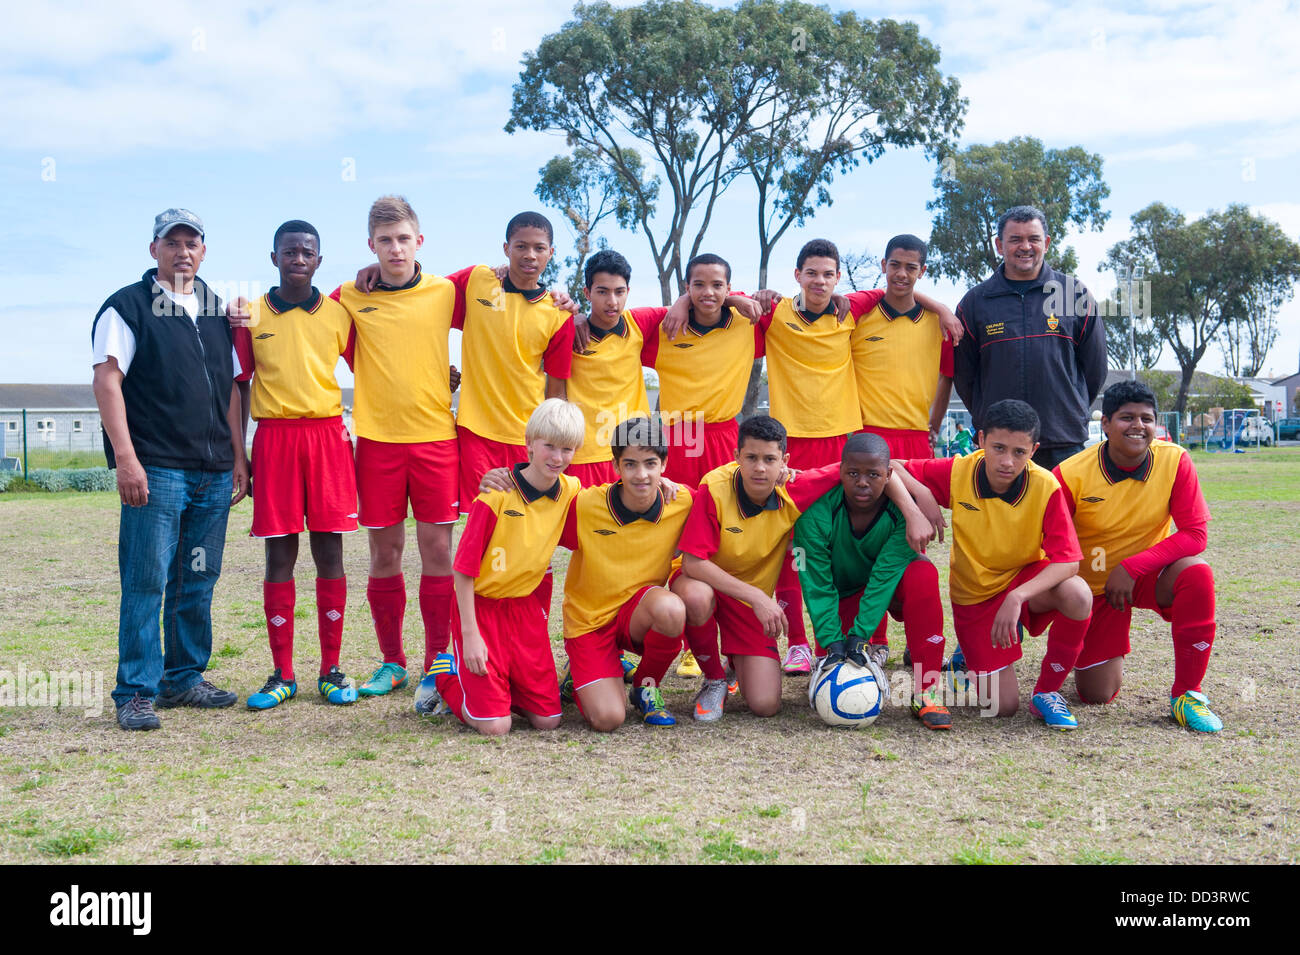 Team photo of Rygersdal U15B juniors with coach and assistant, Cape Town, South Africa - Stock Image